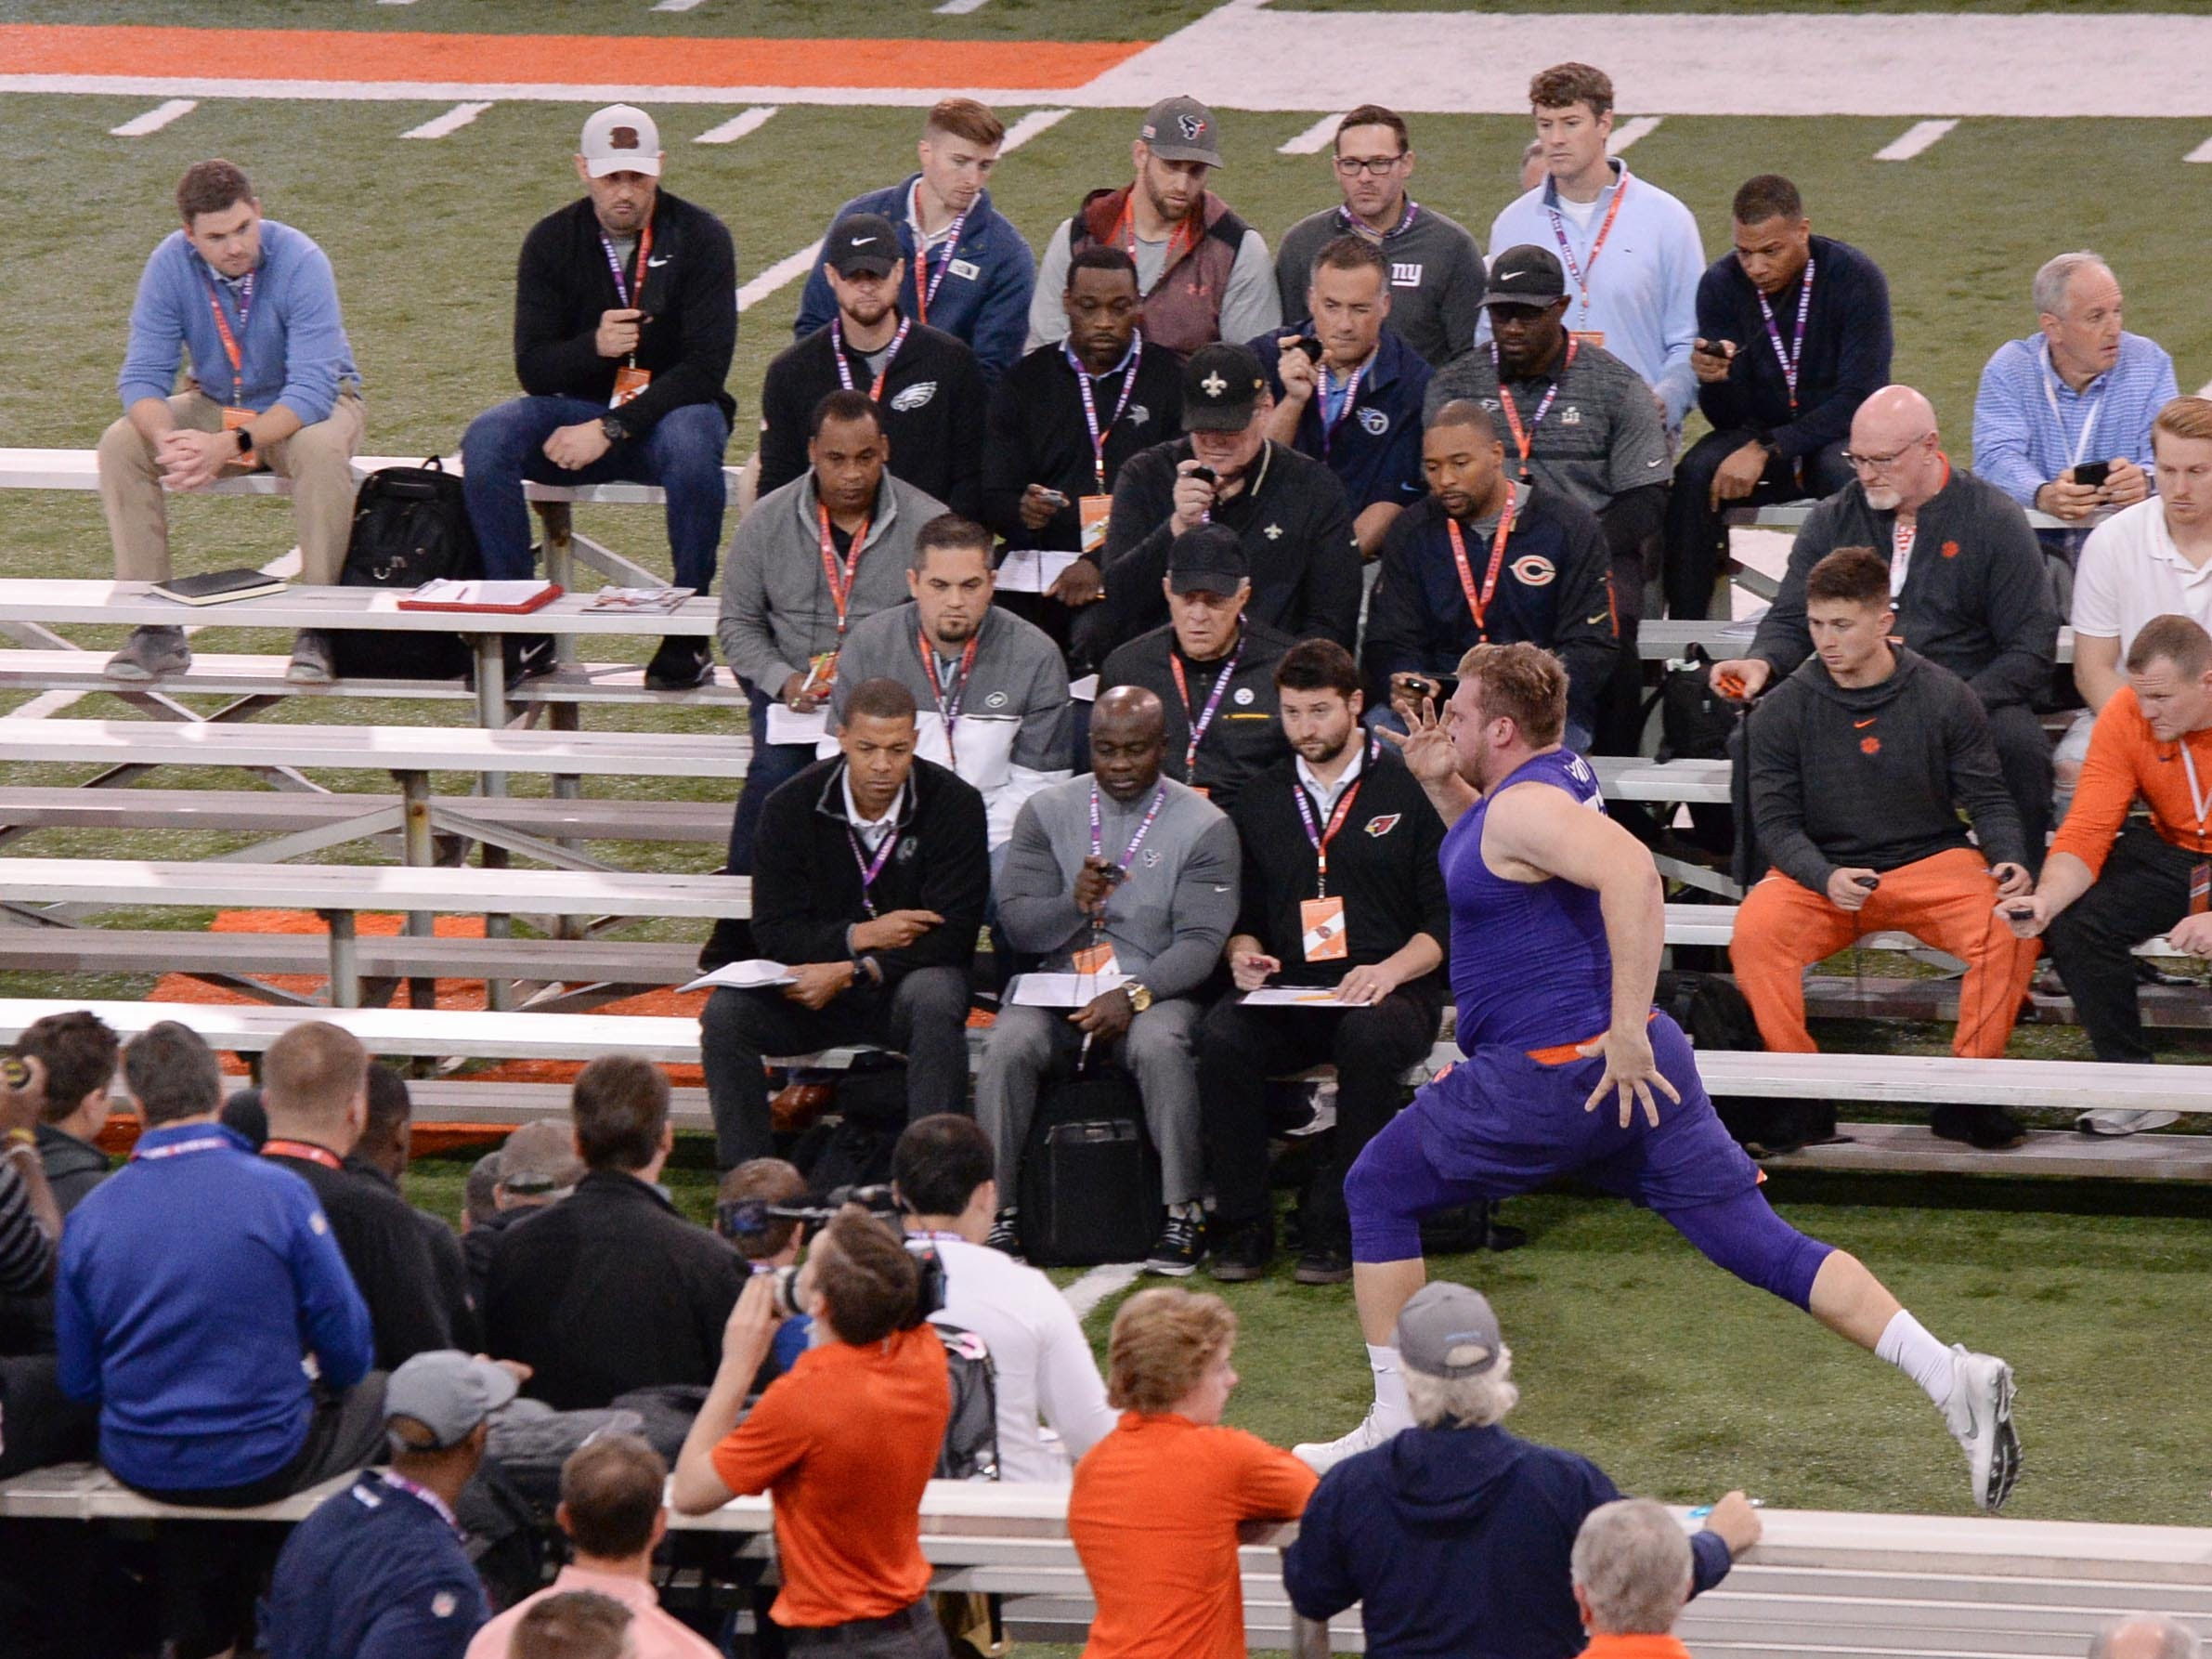 Offensive lineman Mitch Hyatt runs a 4.52 40-yard dash during Clemson pro day at the Poe Indoor Facility in Clemson Thursday, March 14, 2019.